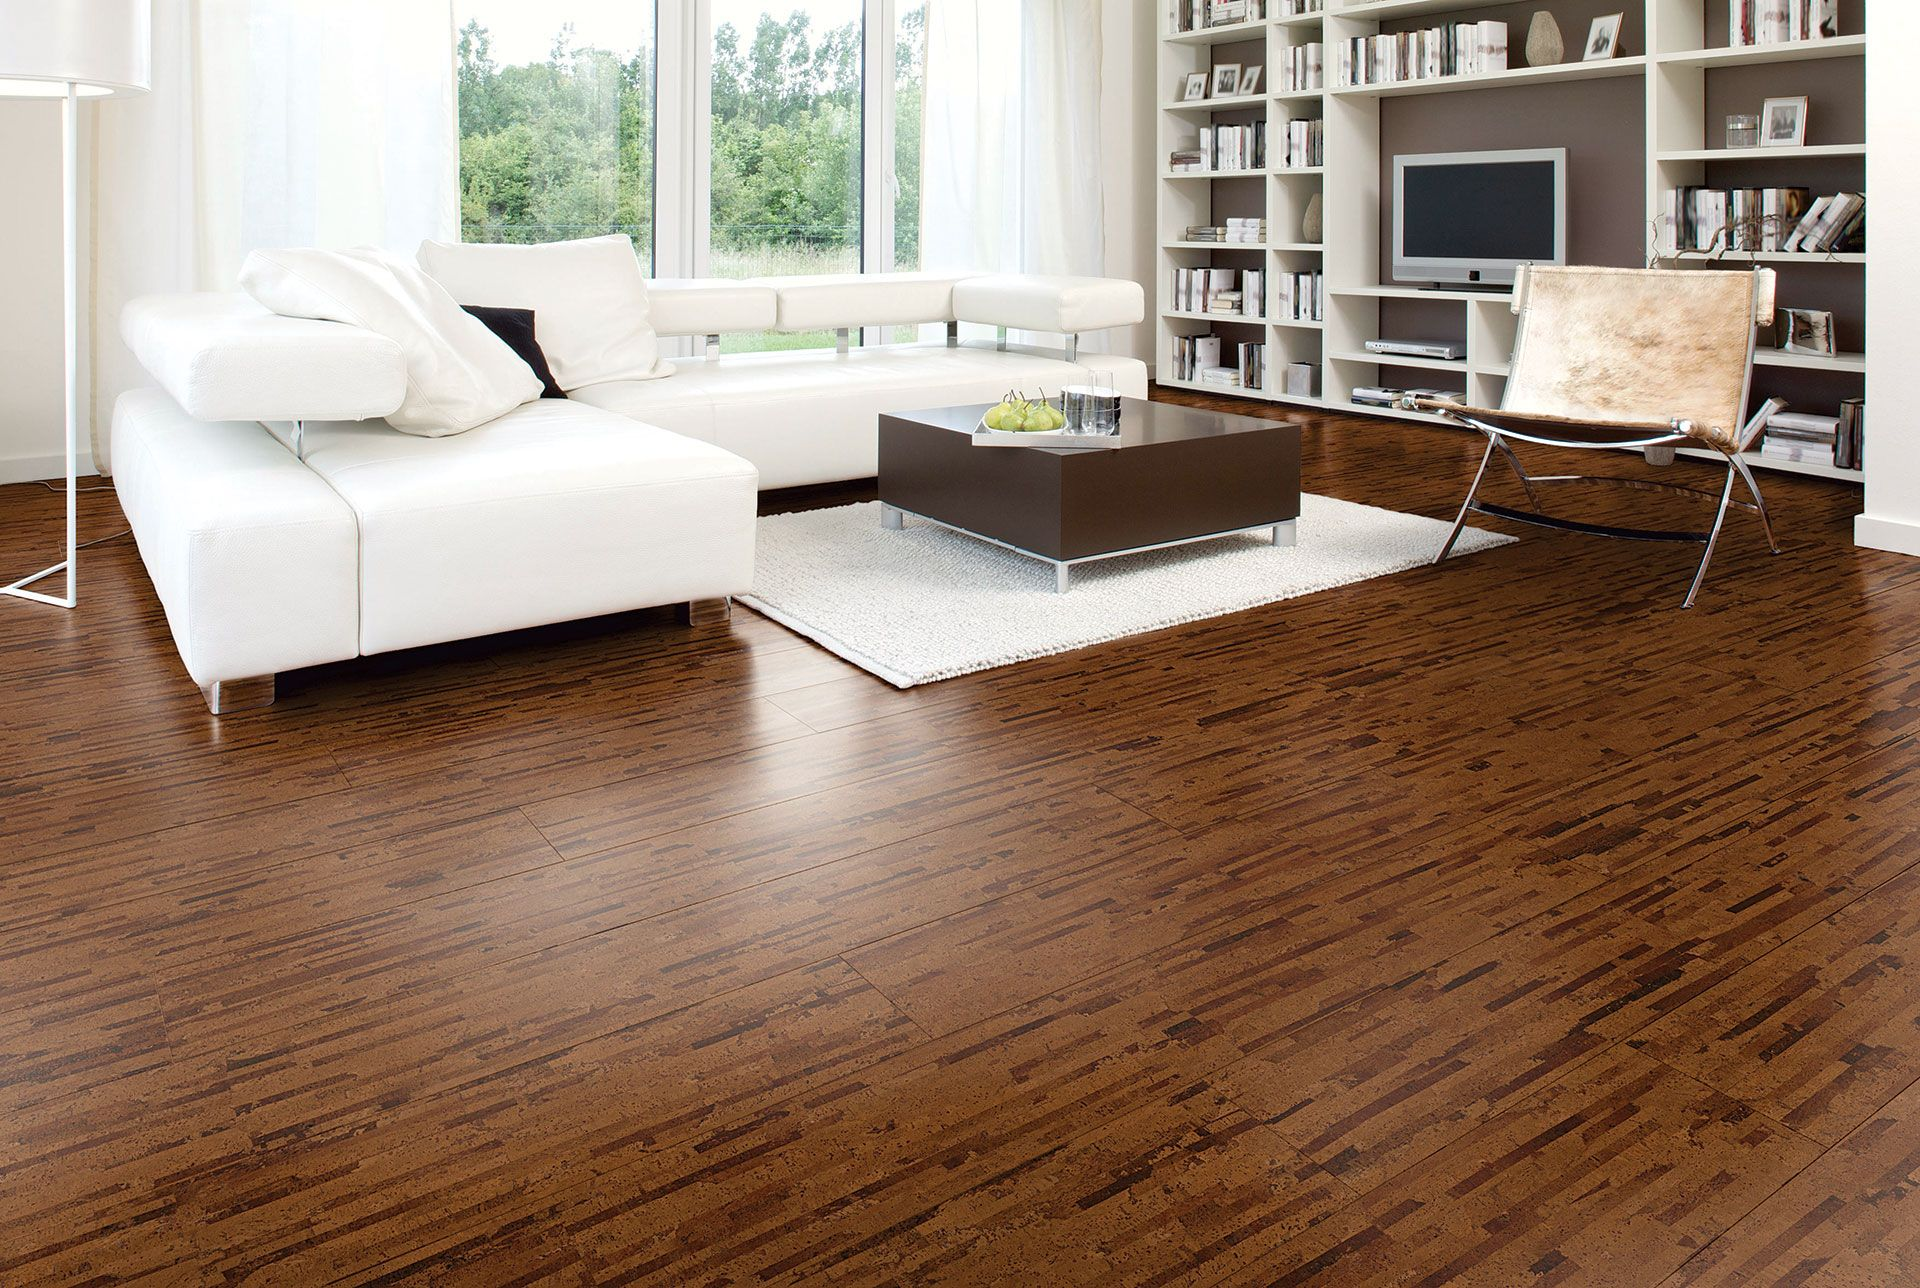 Ashley Fine Floors Specializes In Environmentally Sustainable Cork Flooring Calgary Make Our